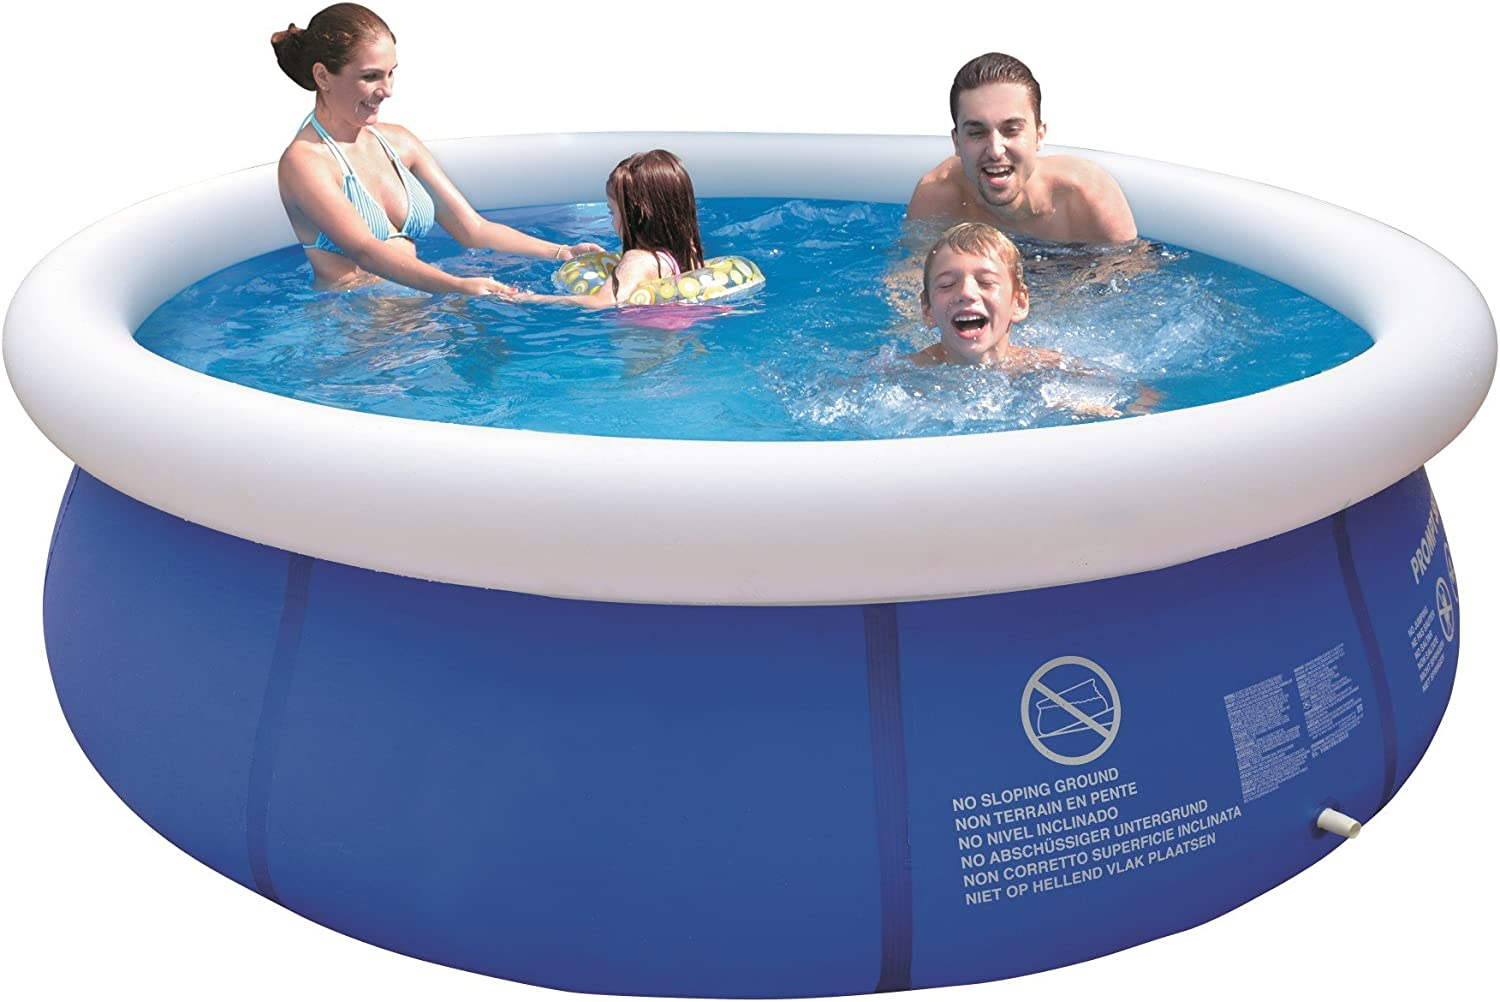 Saica Piscina, Color Azul y Blanco (10202): Amazon.es: Juguetes y ...